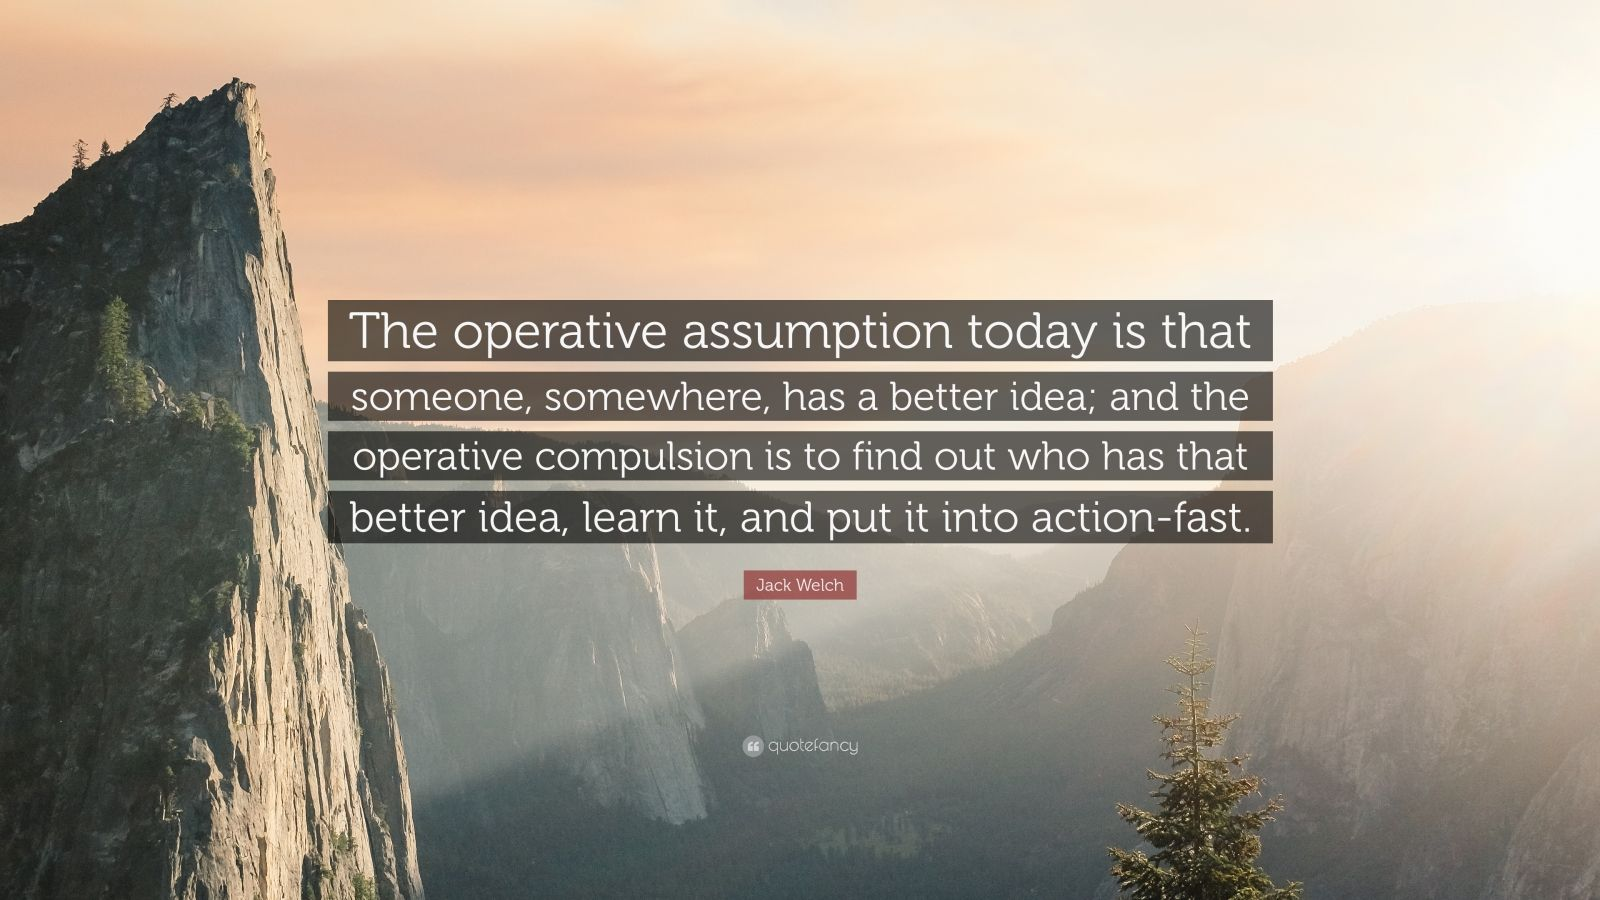 """Jack Welch Quote: """"The operative assumption today is that someone, somewhere, has a better idea; and the operative compulsion is to find out who has that better idea, learn it, and put it into action-fast."""""""